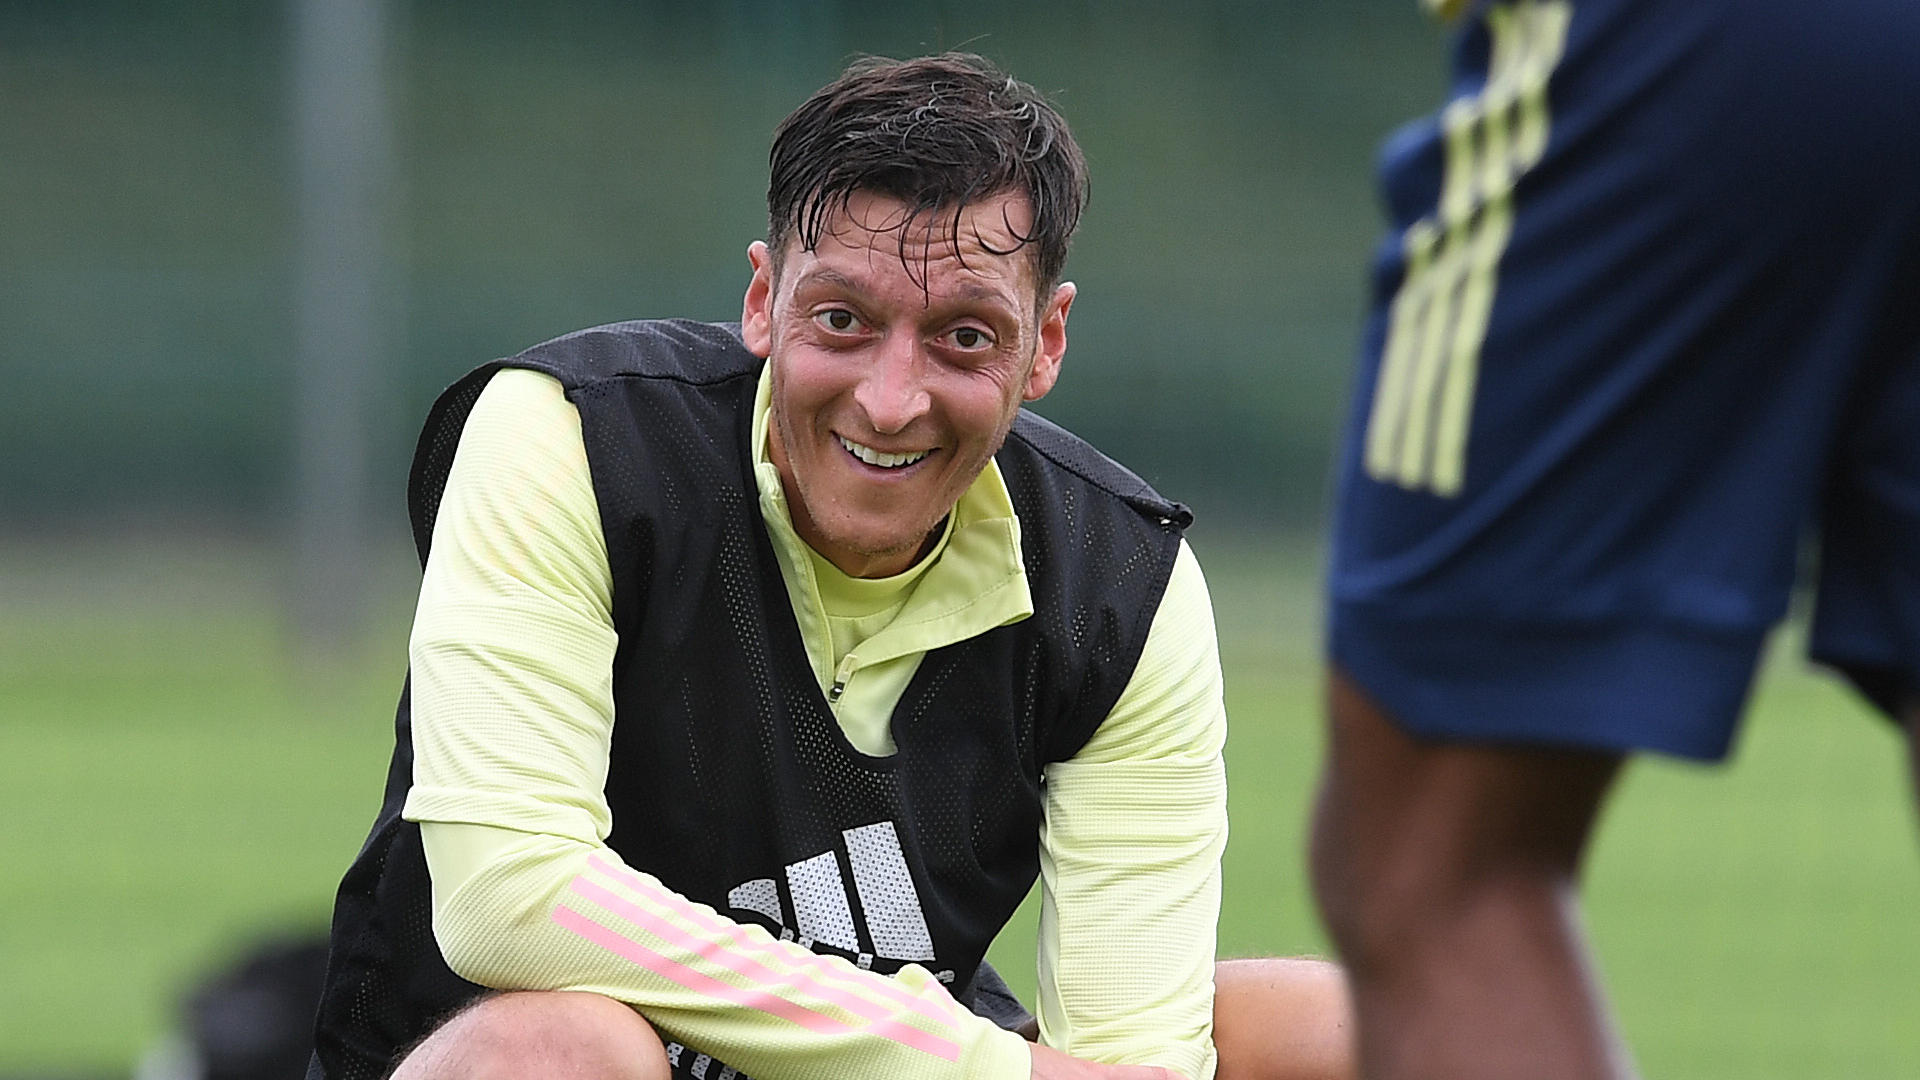 Ozil is a Fenerbahce fanatic - agent hopeful Arsenal midfielder will complete move